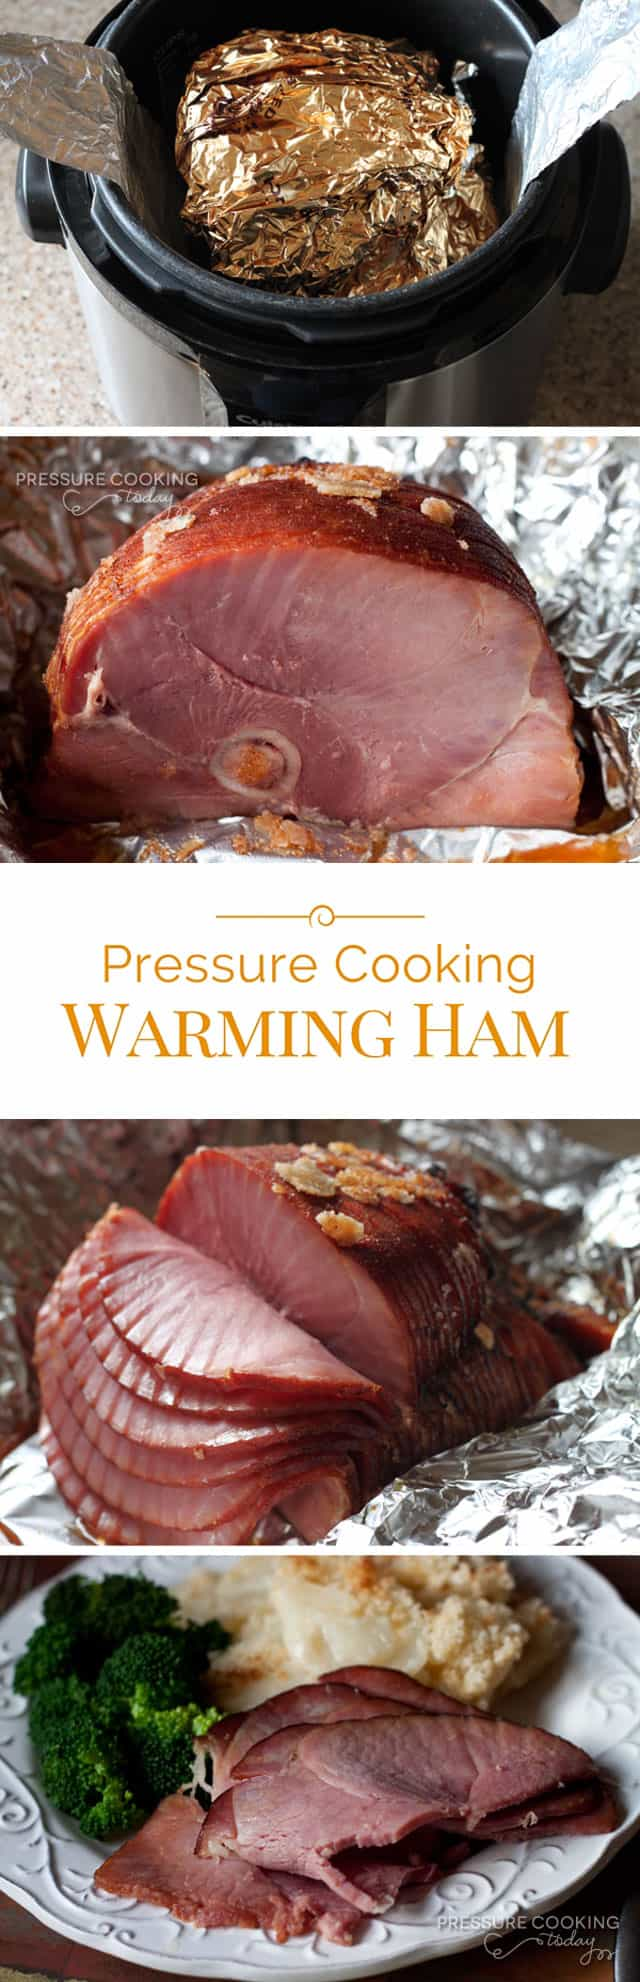 Heating Ham Slices In The Pressure Cooker